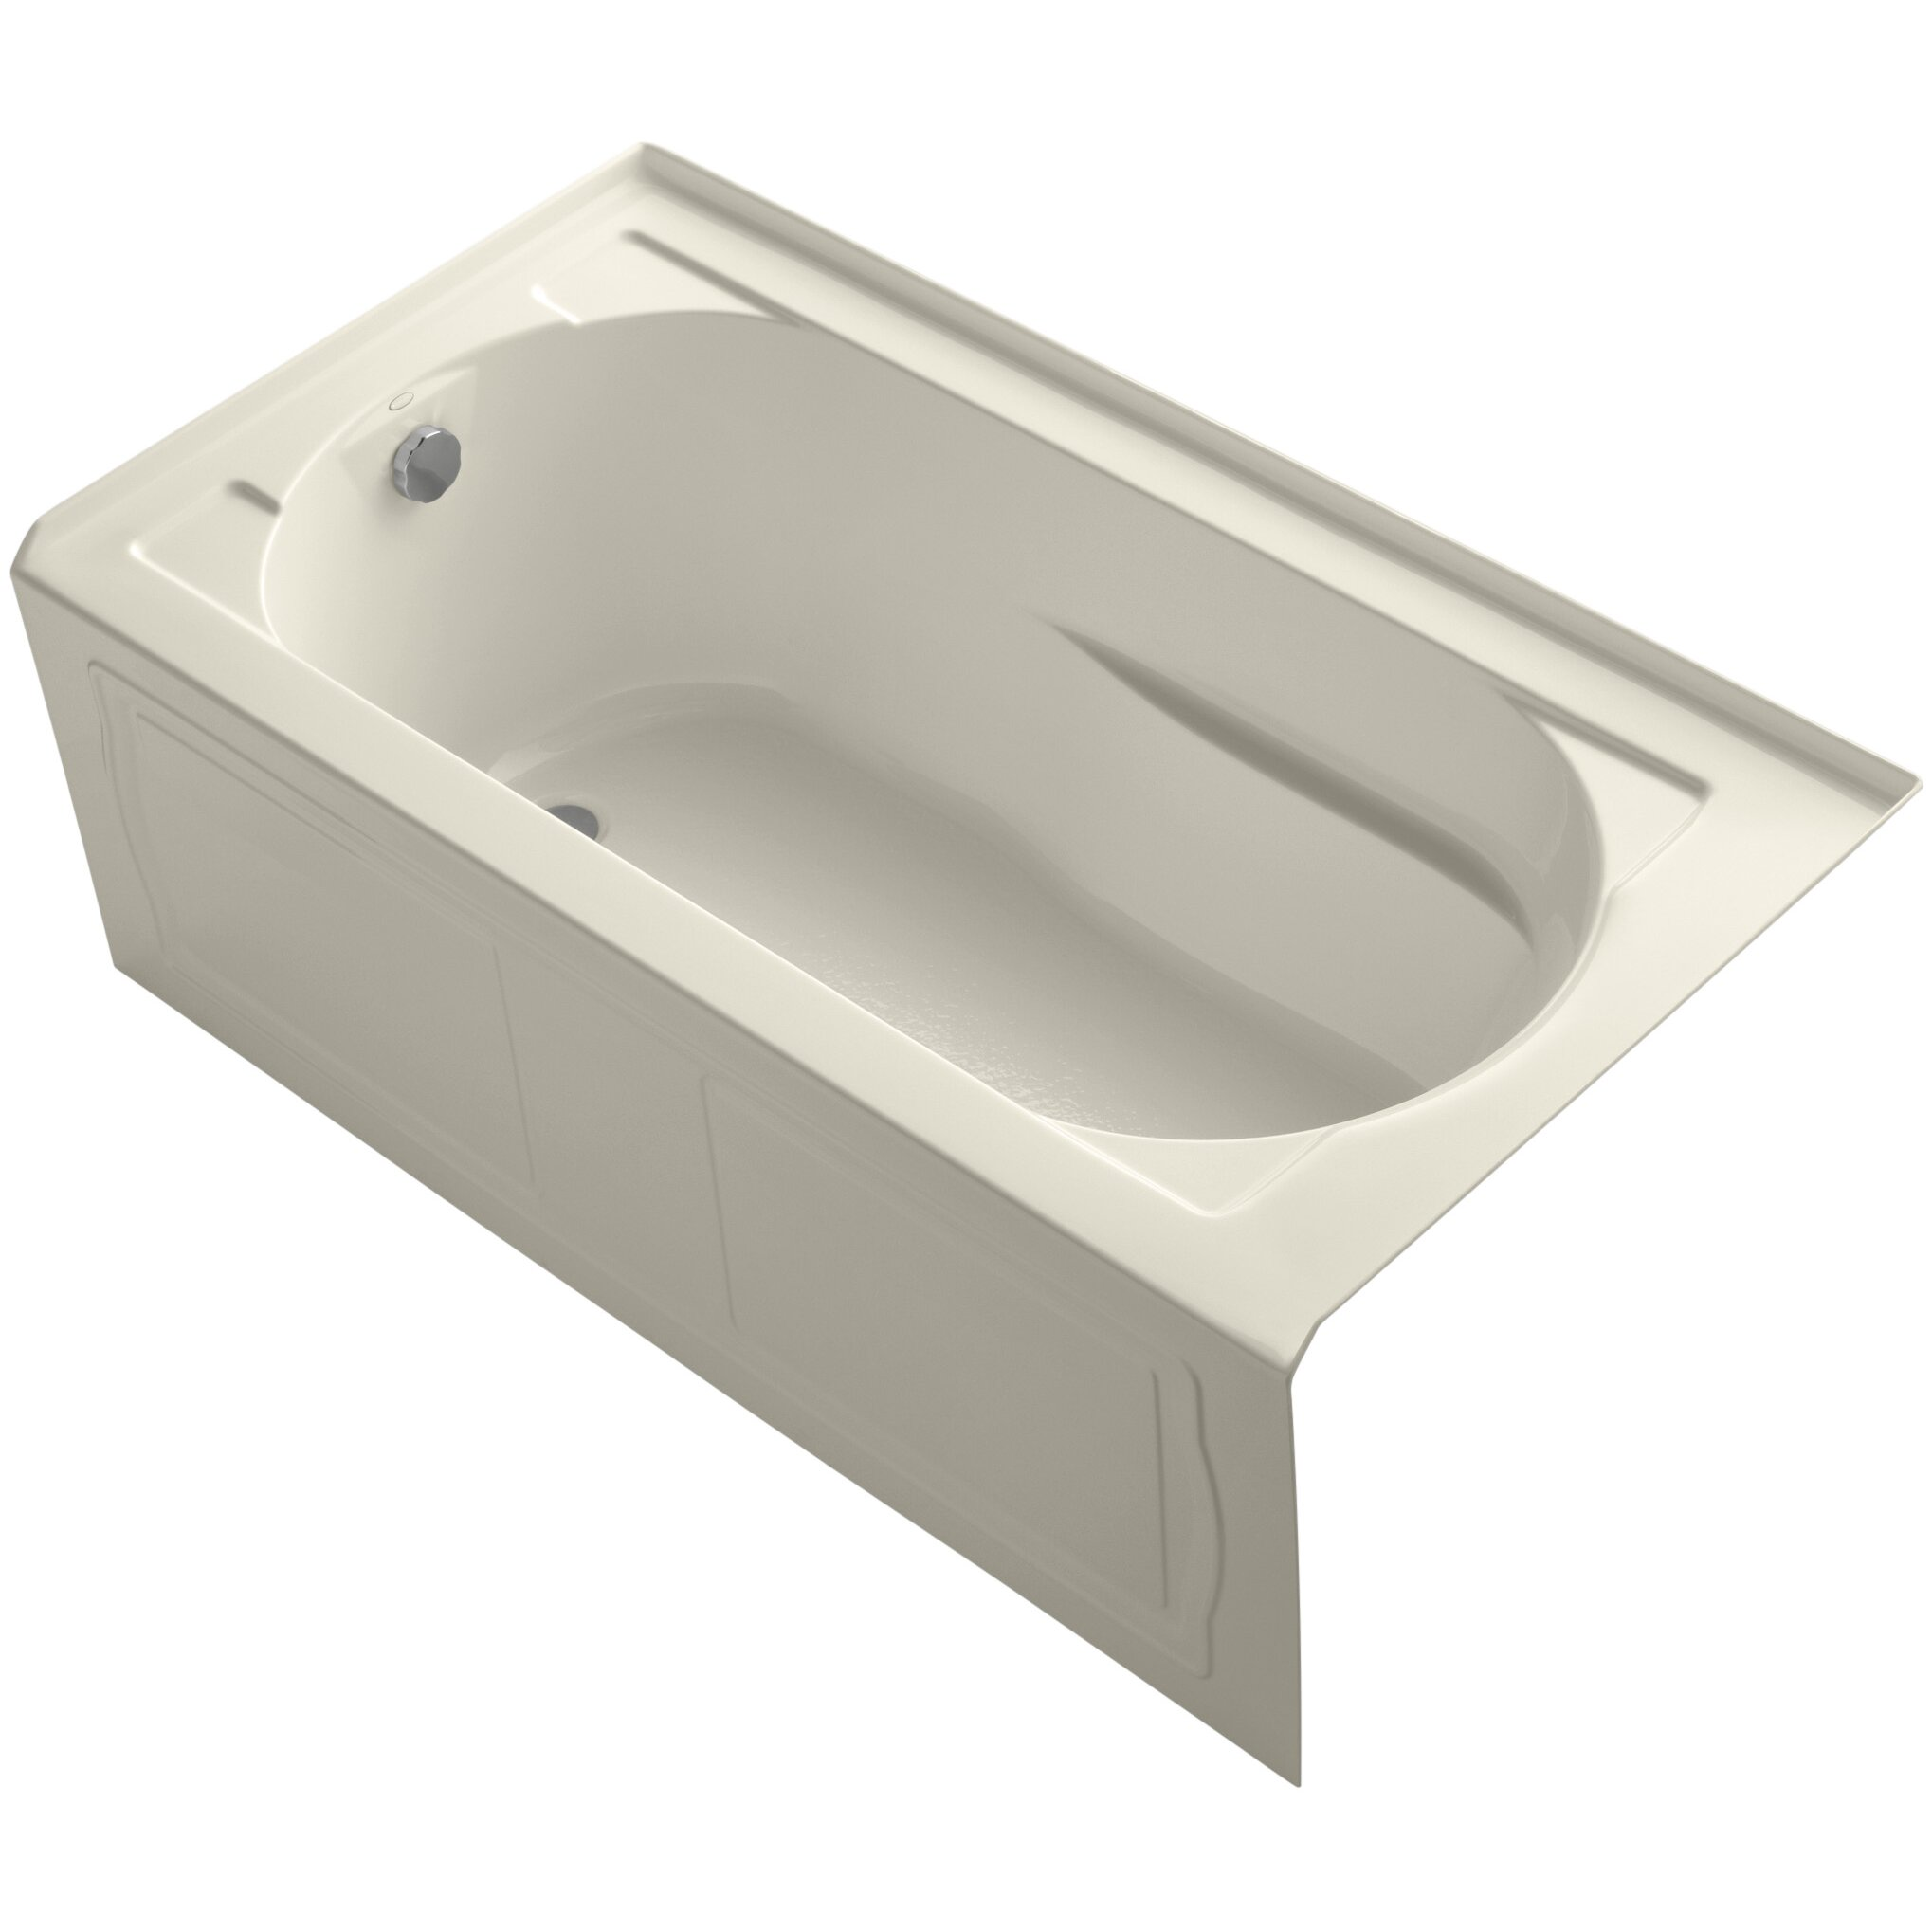 Kohler devonshire tub 60 x 32 soaking bathtub reviews wayfair - Kohler devonshire reviews ...